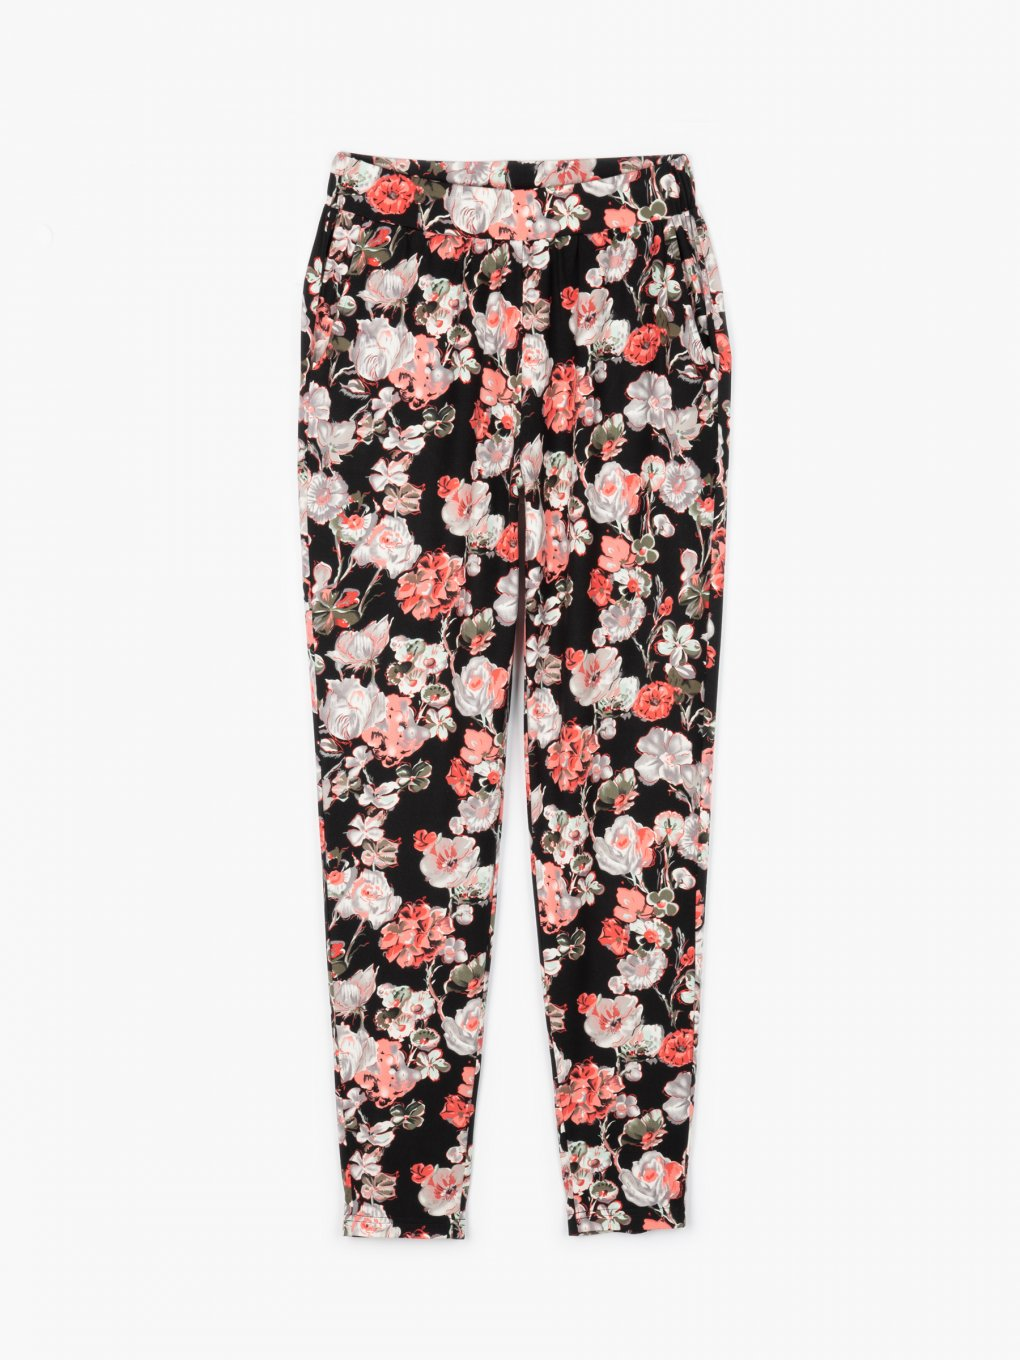 Floral print elastic trousers